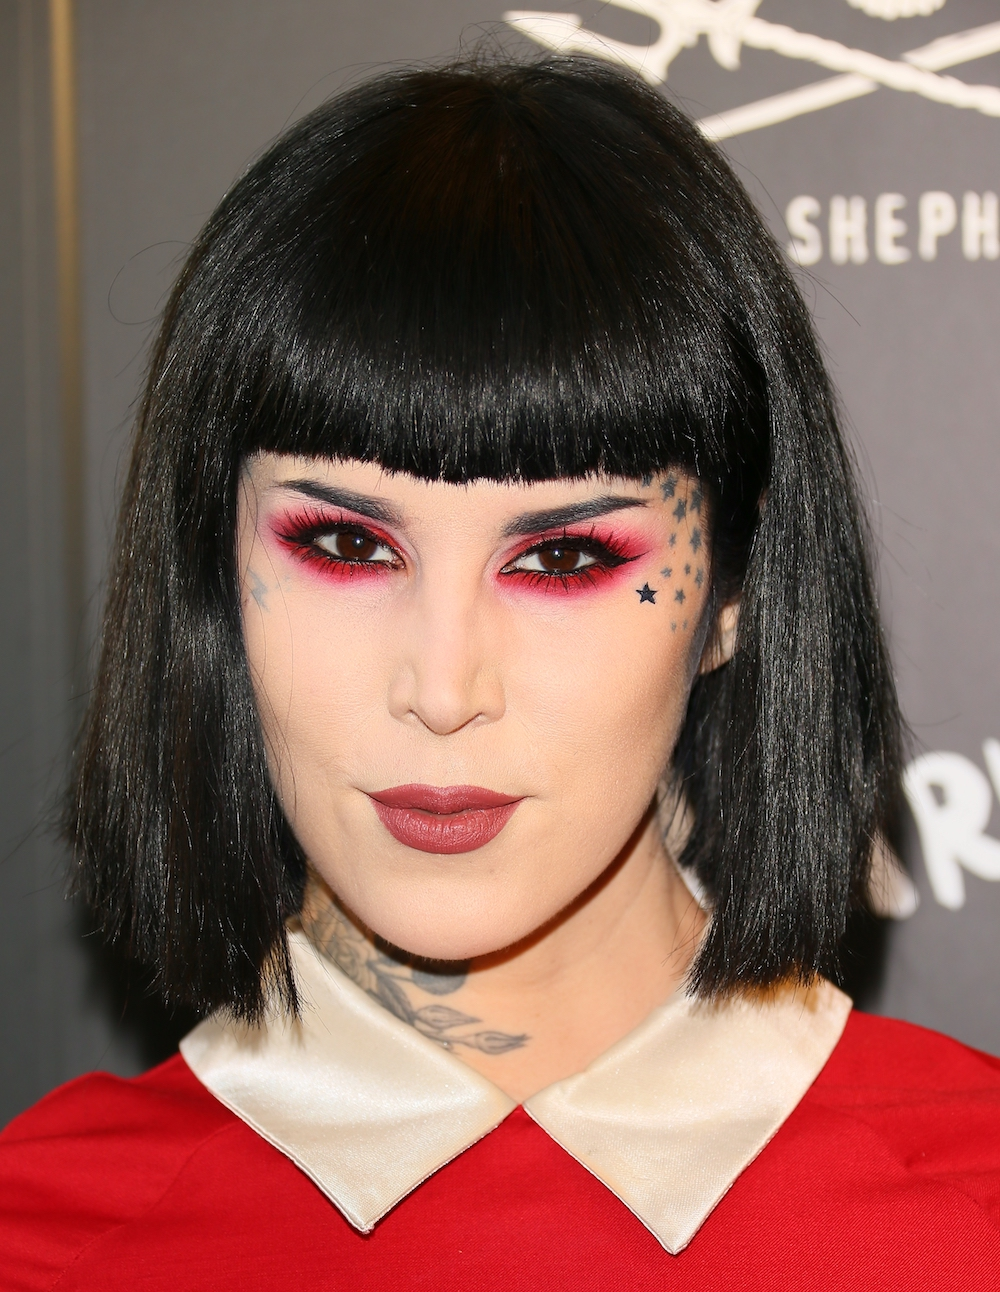 Kat Von D Beauty's new lipstick duo for the Everlasting Flash Sale will give your fall look some edge